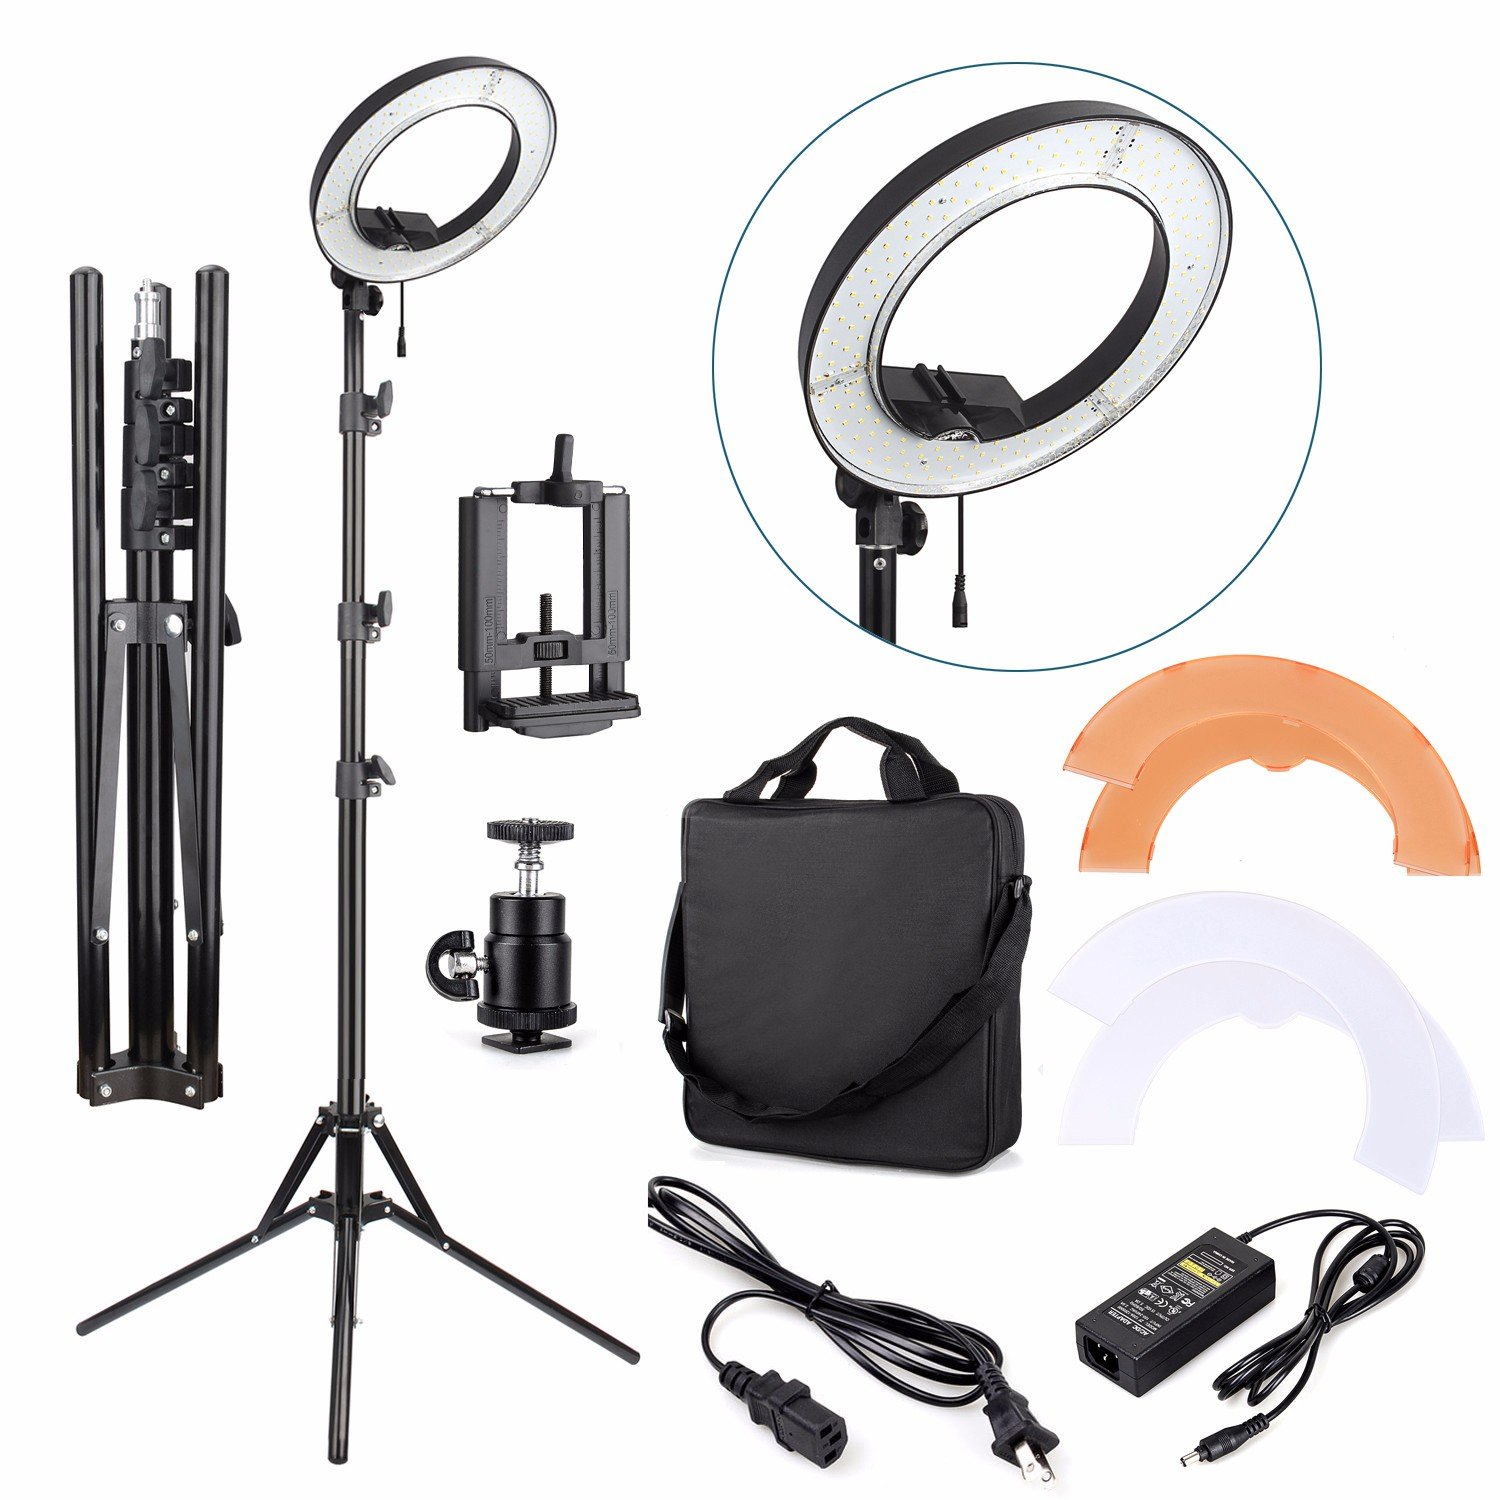 EACHSHOT ES240 Kit {Including Light, Stand, Phone Clamp, Tripod Head }240 LED 18' Stepless Adjustable Ring Light Camera Photo/Video Portrait photography 5500K Dimmable (Light Stand Included) EA700205